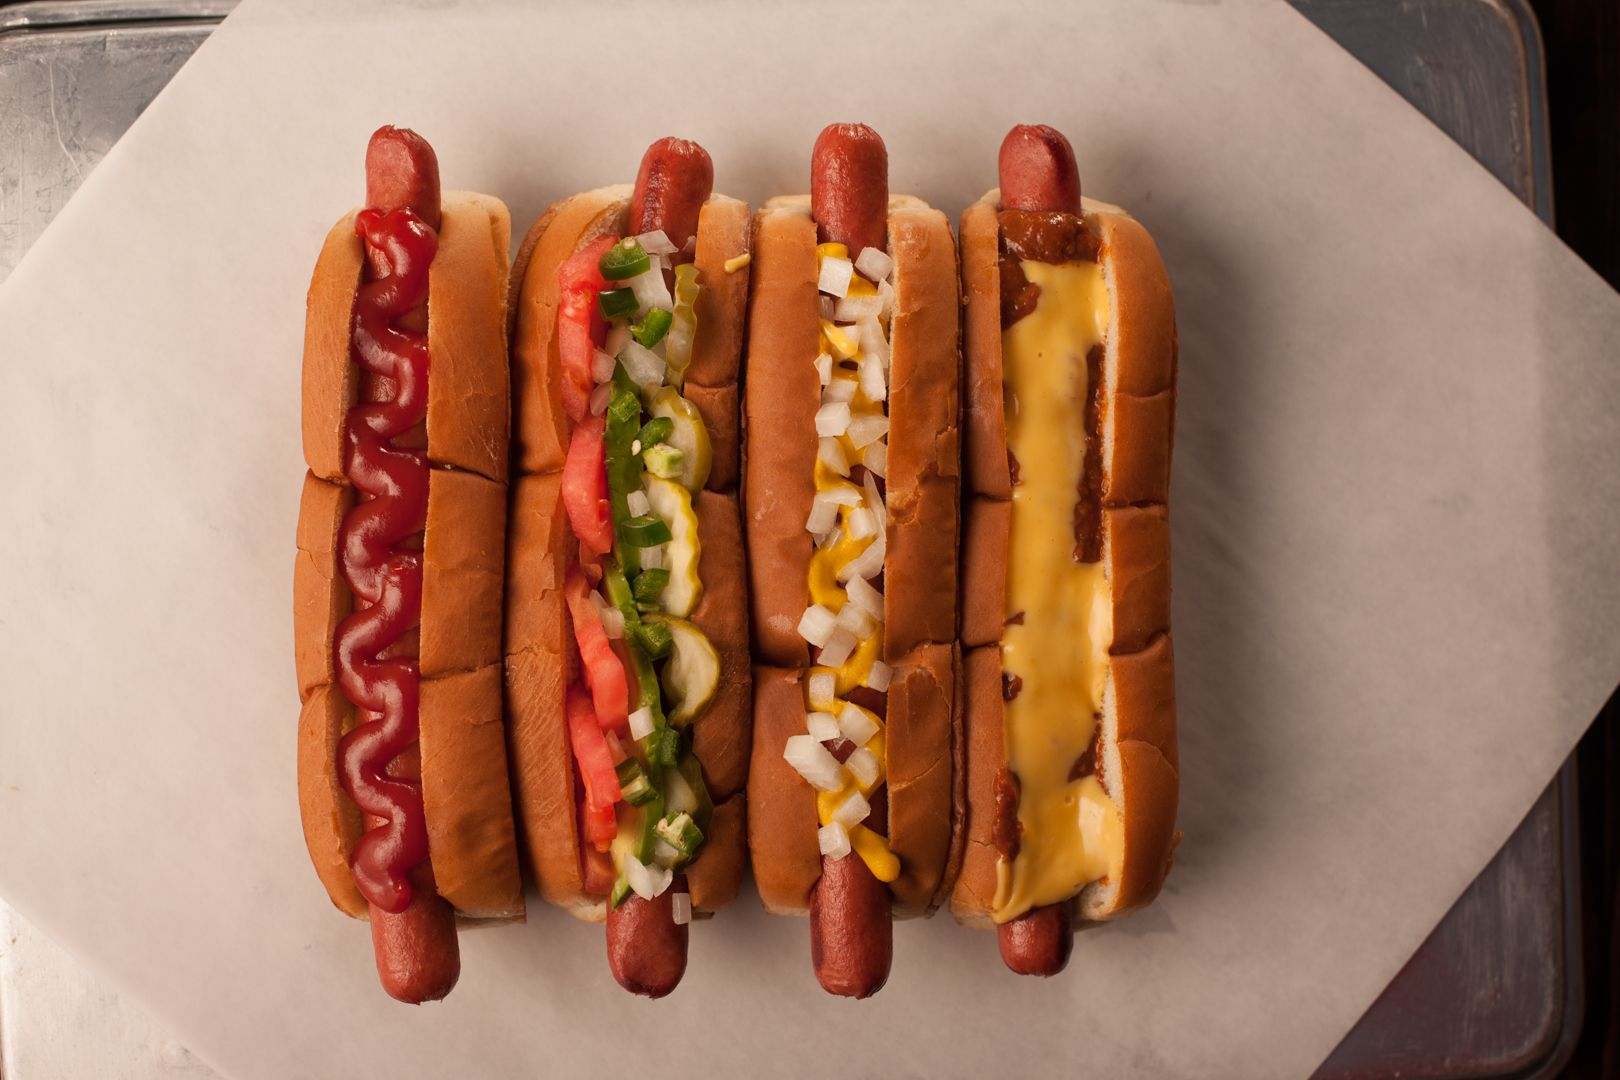 July 23rd is National Hot Dog Day! Celebrate at Meatheads